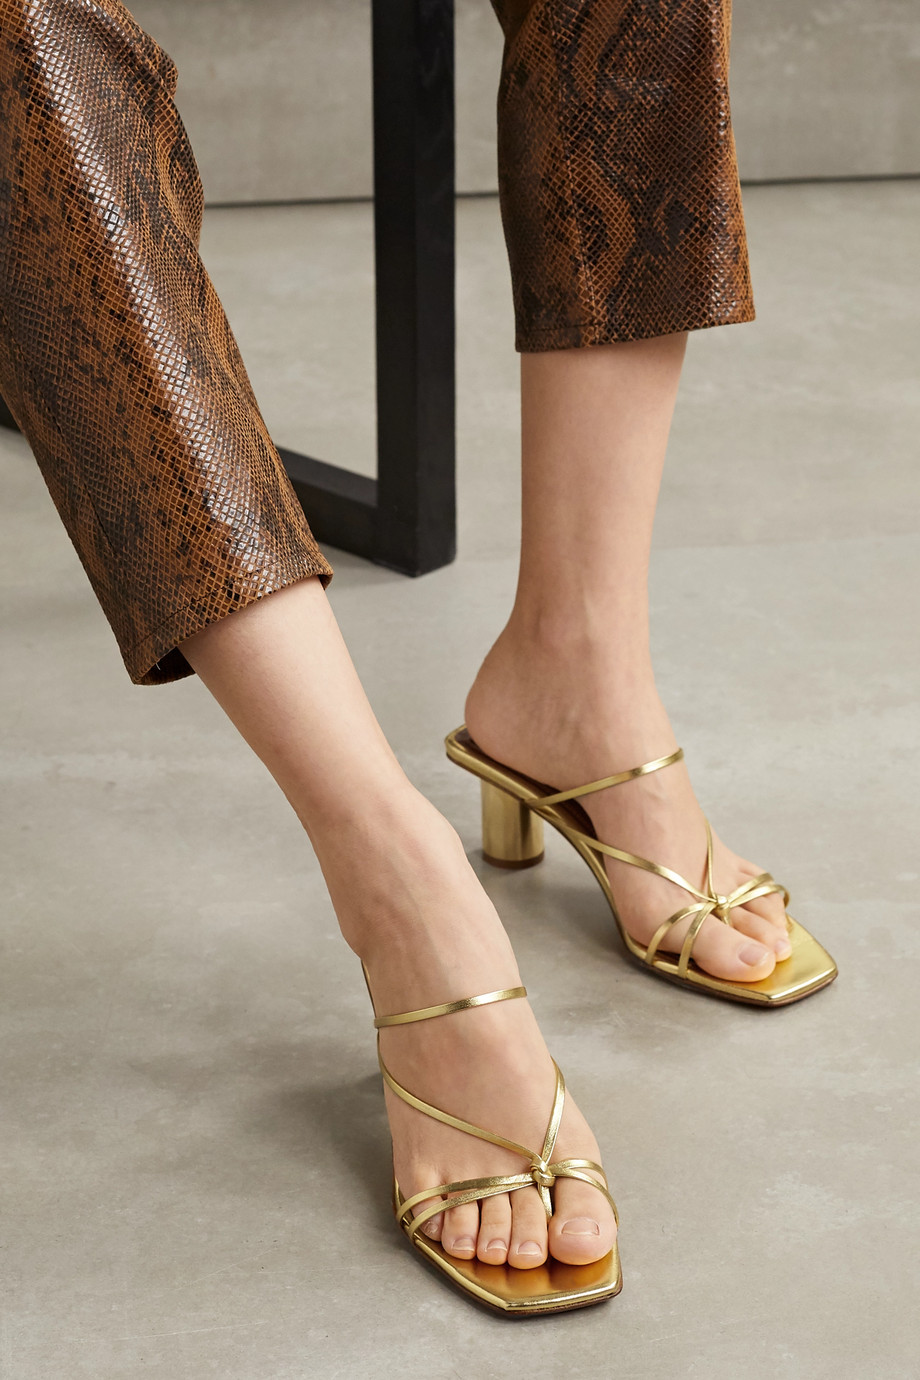 Souliers Martinez Aranda metallic leather mules